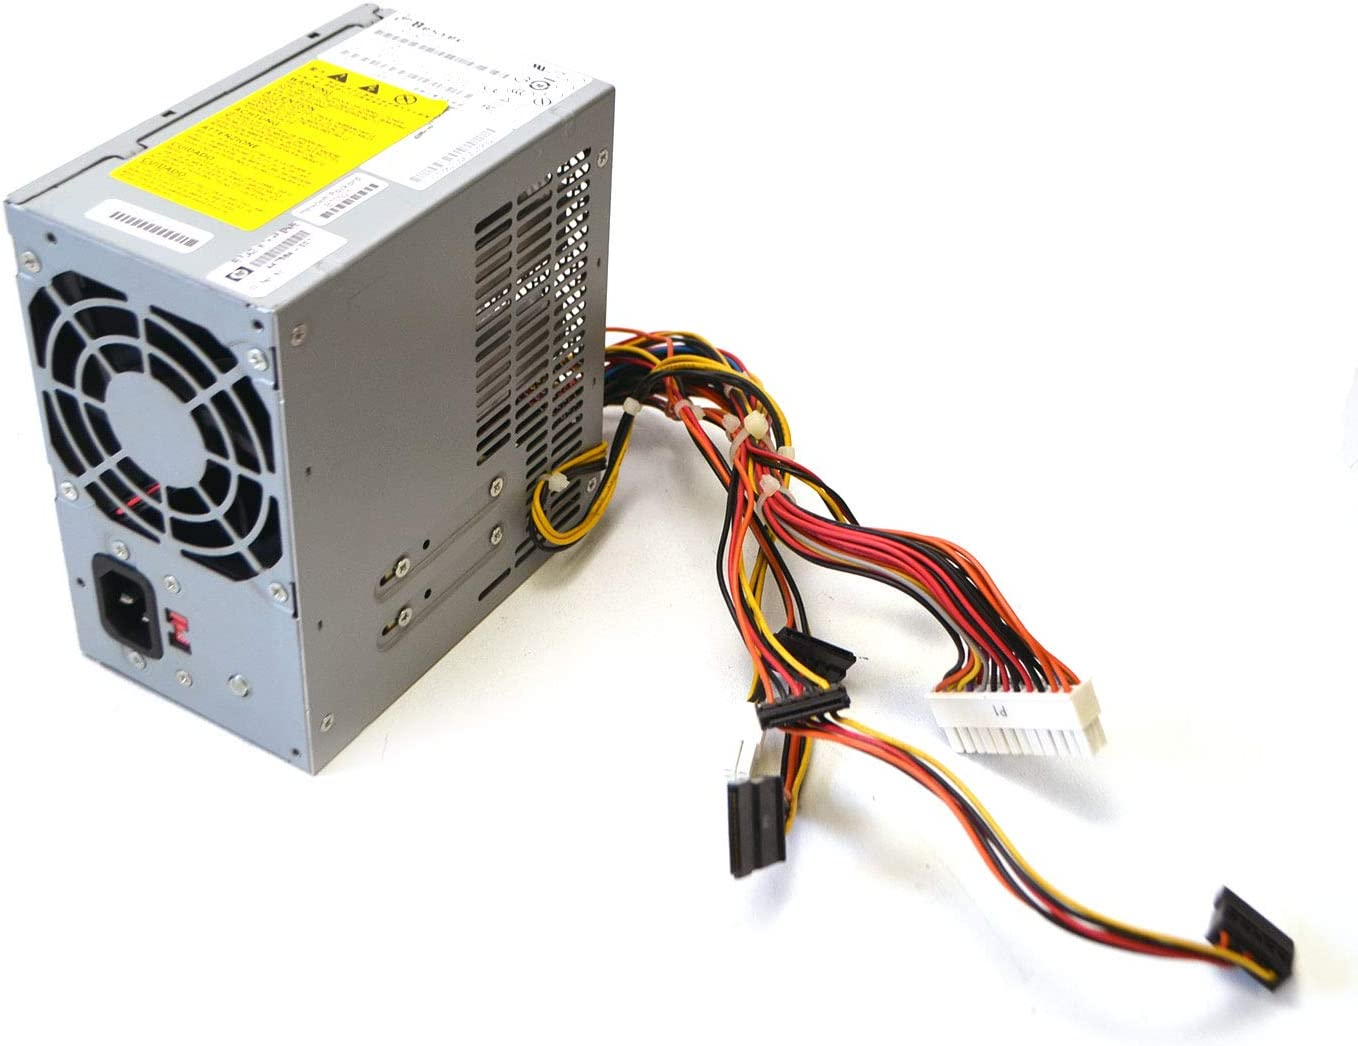 Compatible OEM Replacement for DELL Optiplex 3010 7010 9010 MT 300W Watt Upgrade Fits 275W Switching Power Supply Unit PSU L275AM-00 R8JX0 61J2N Precision T1650